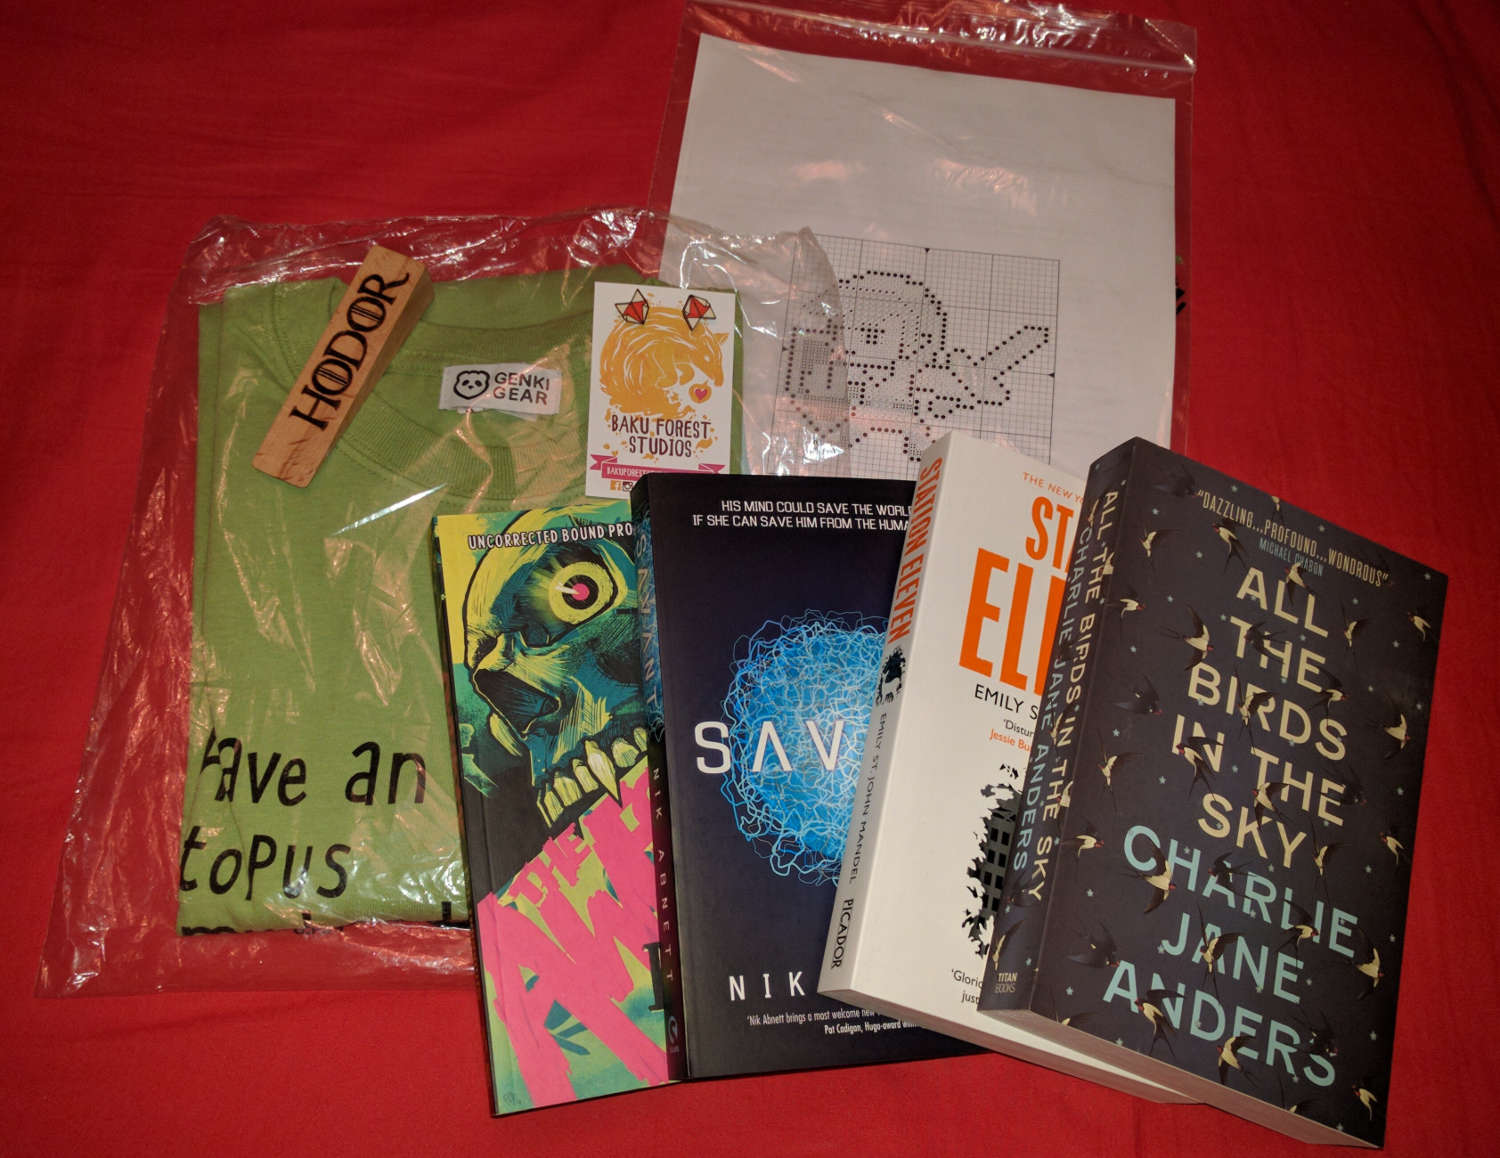 Picture of prizes (books, a t-shirt, and other bits